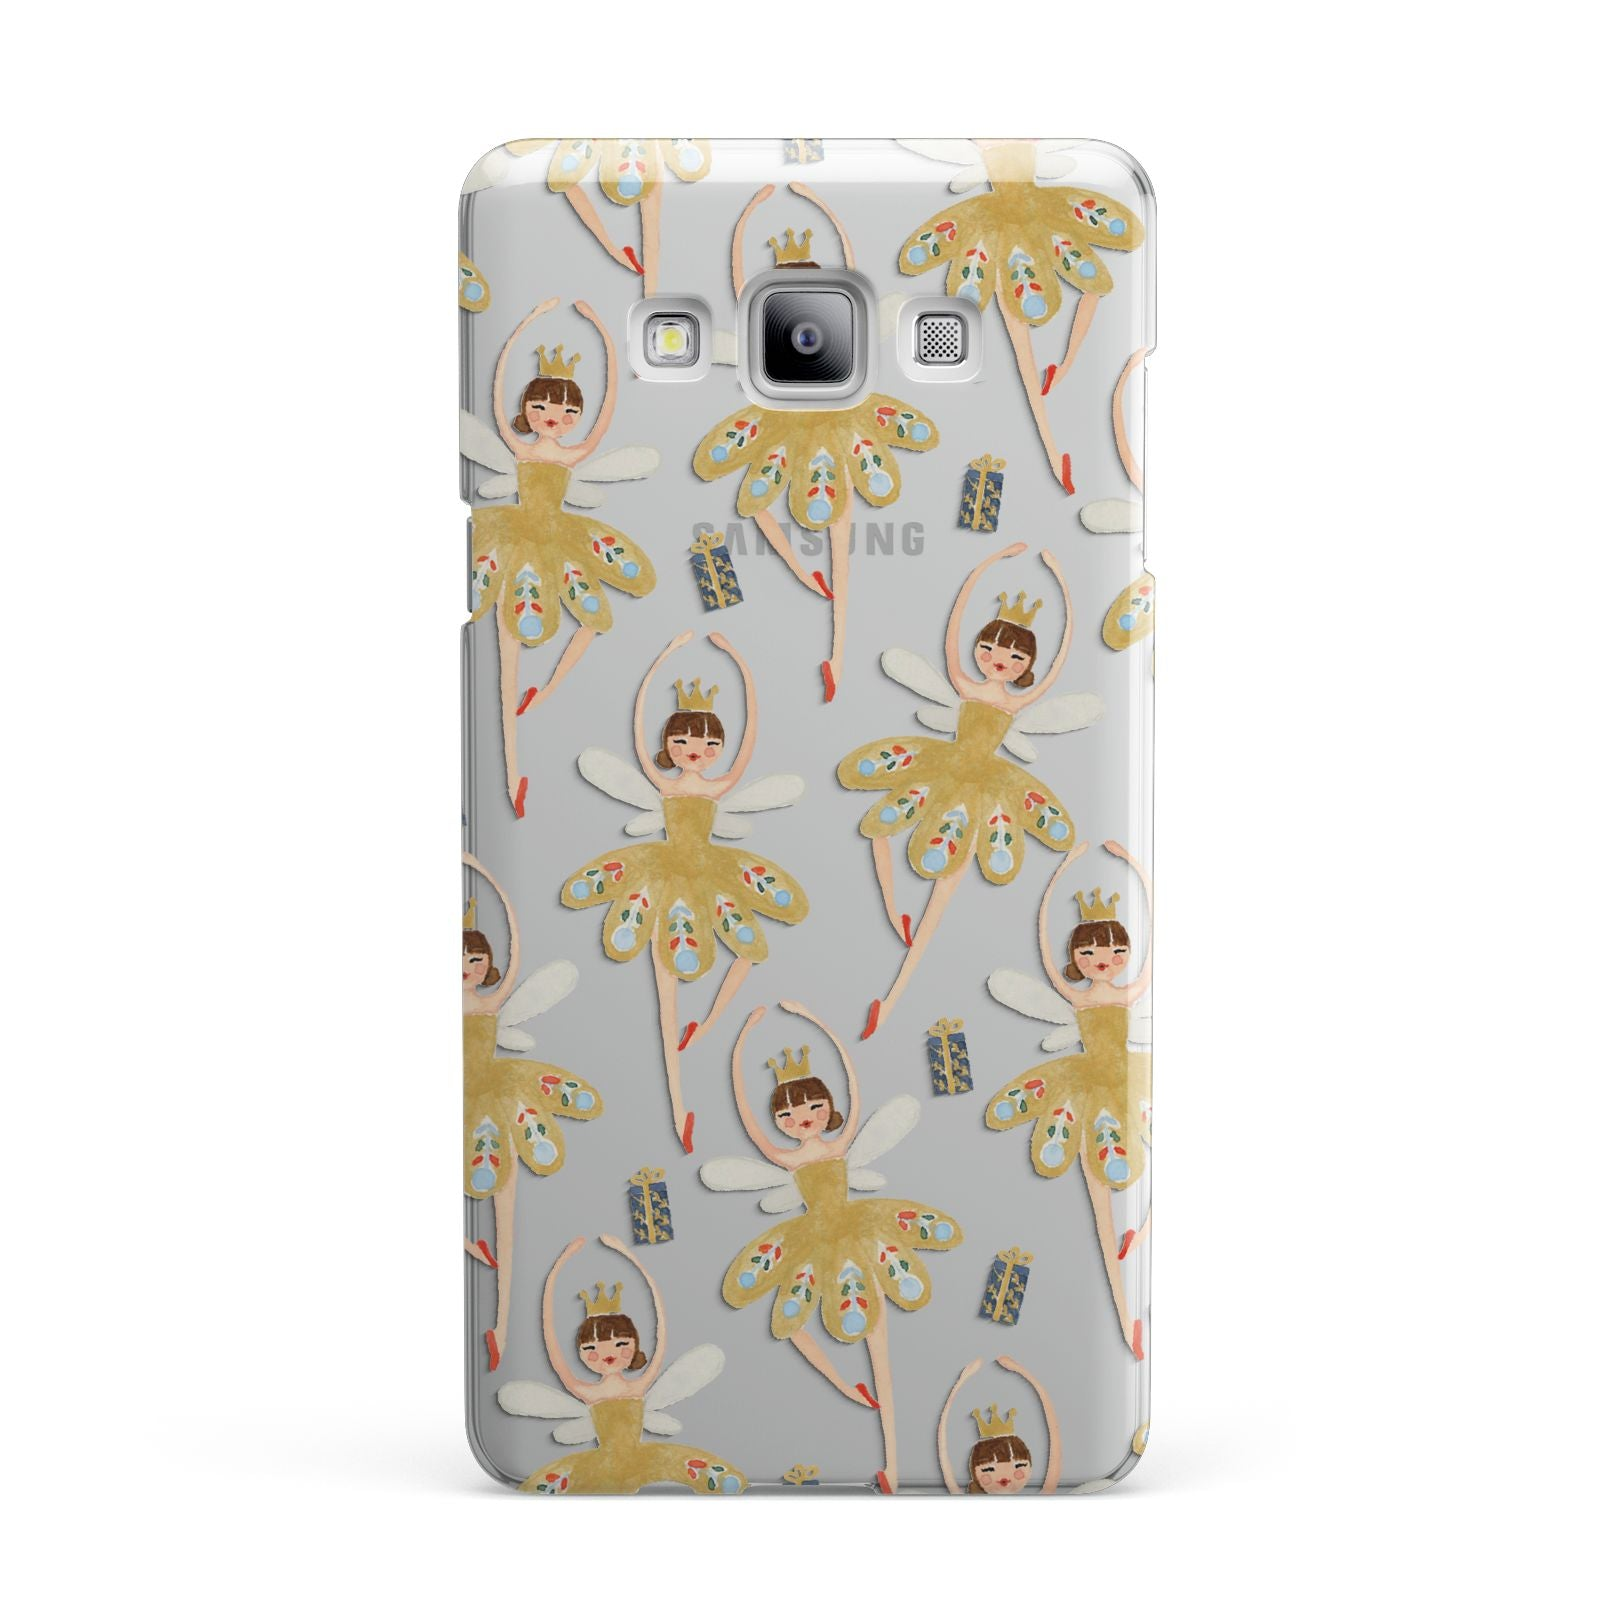 Dancing ballerina princess Samsung Galaxy A7 2015 Case